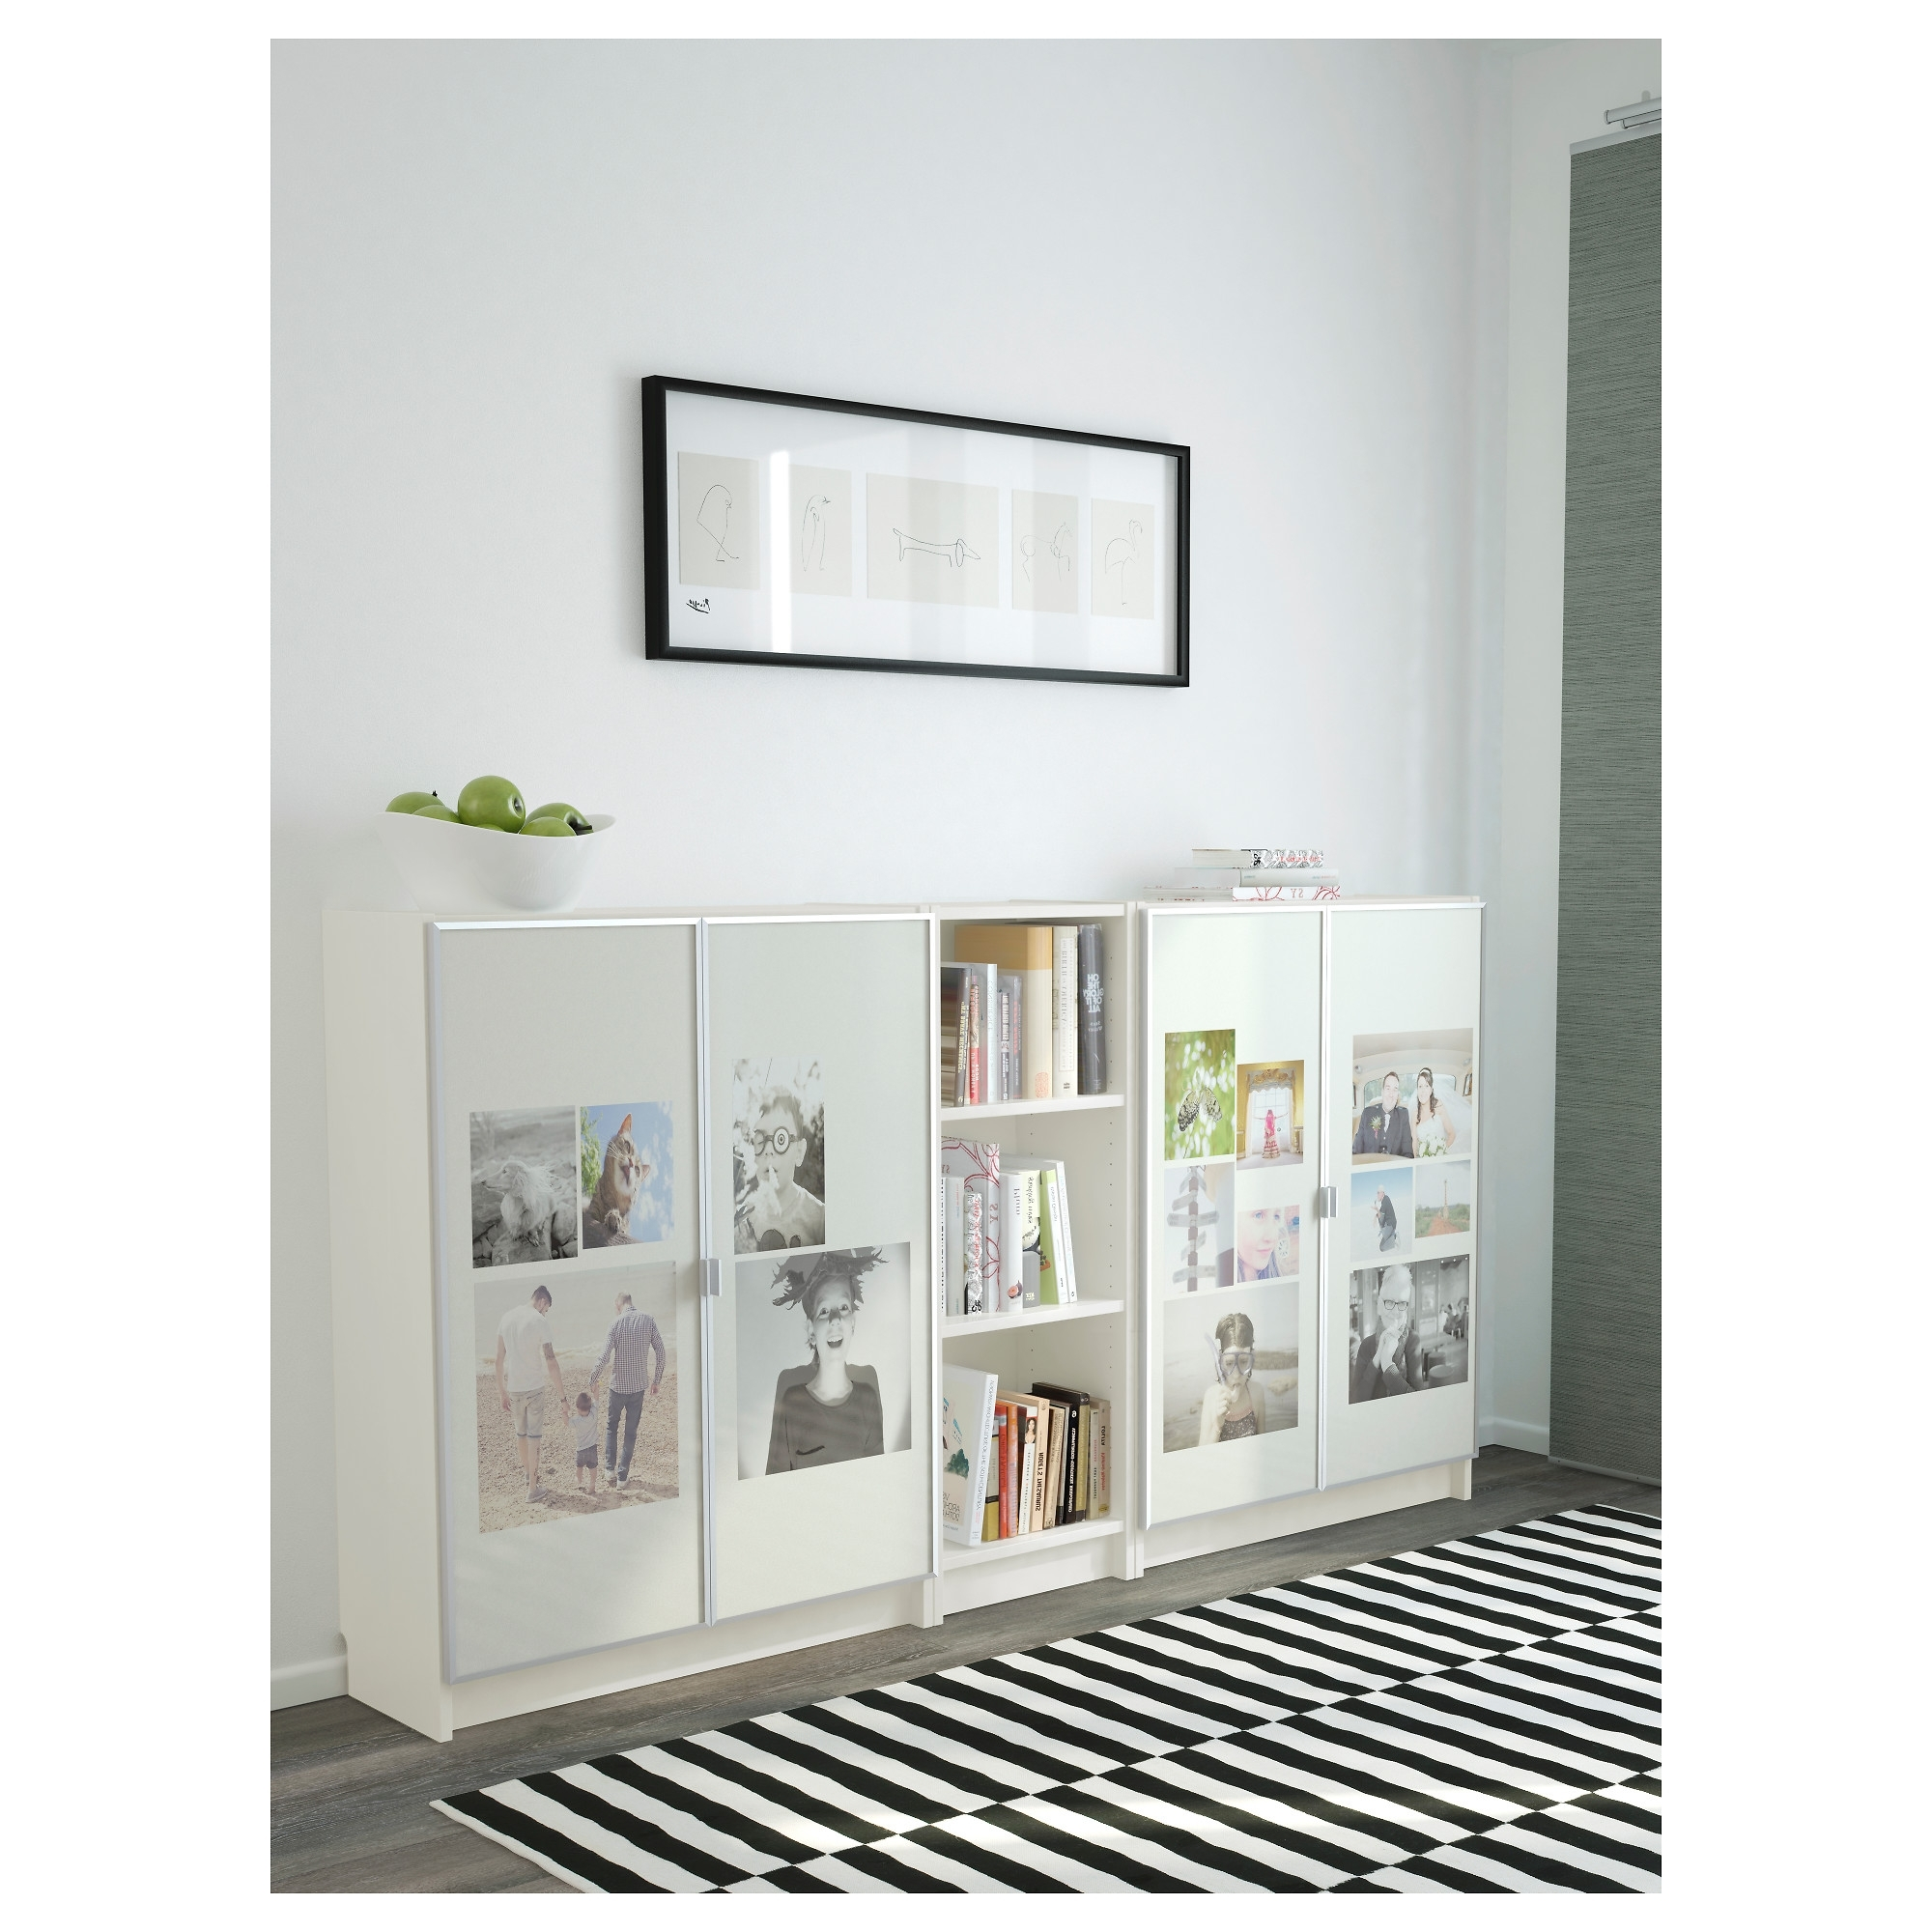 2018 Ikea Billy Bookcases Intended For Billy / Morliden Bookcase – White – Ikea (View 13 of 15)